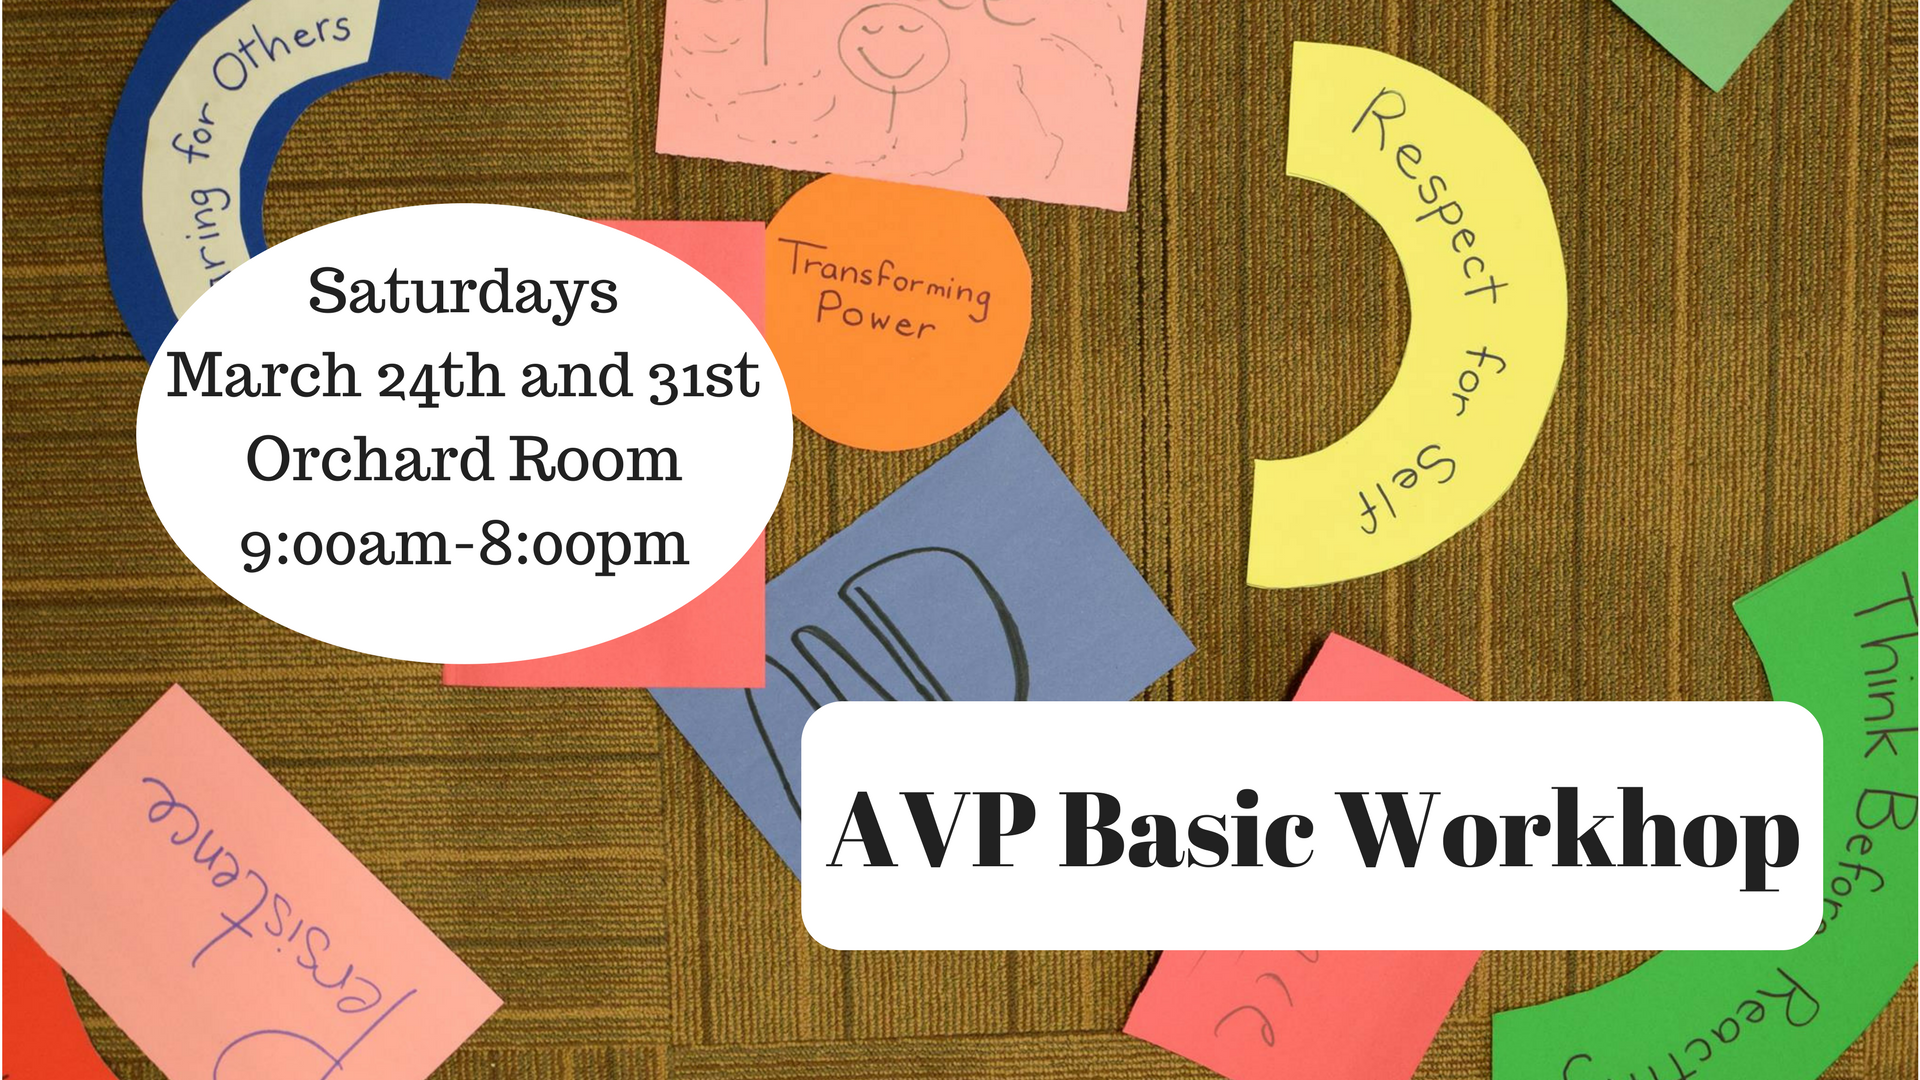 AVP Basic Workhop